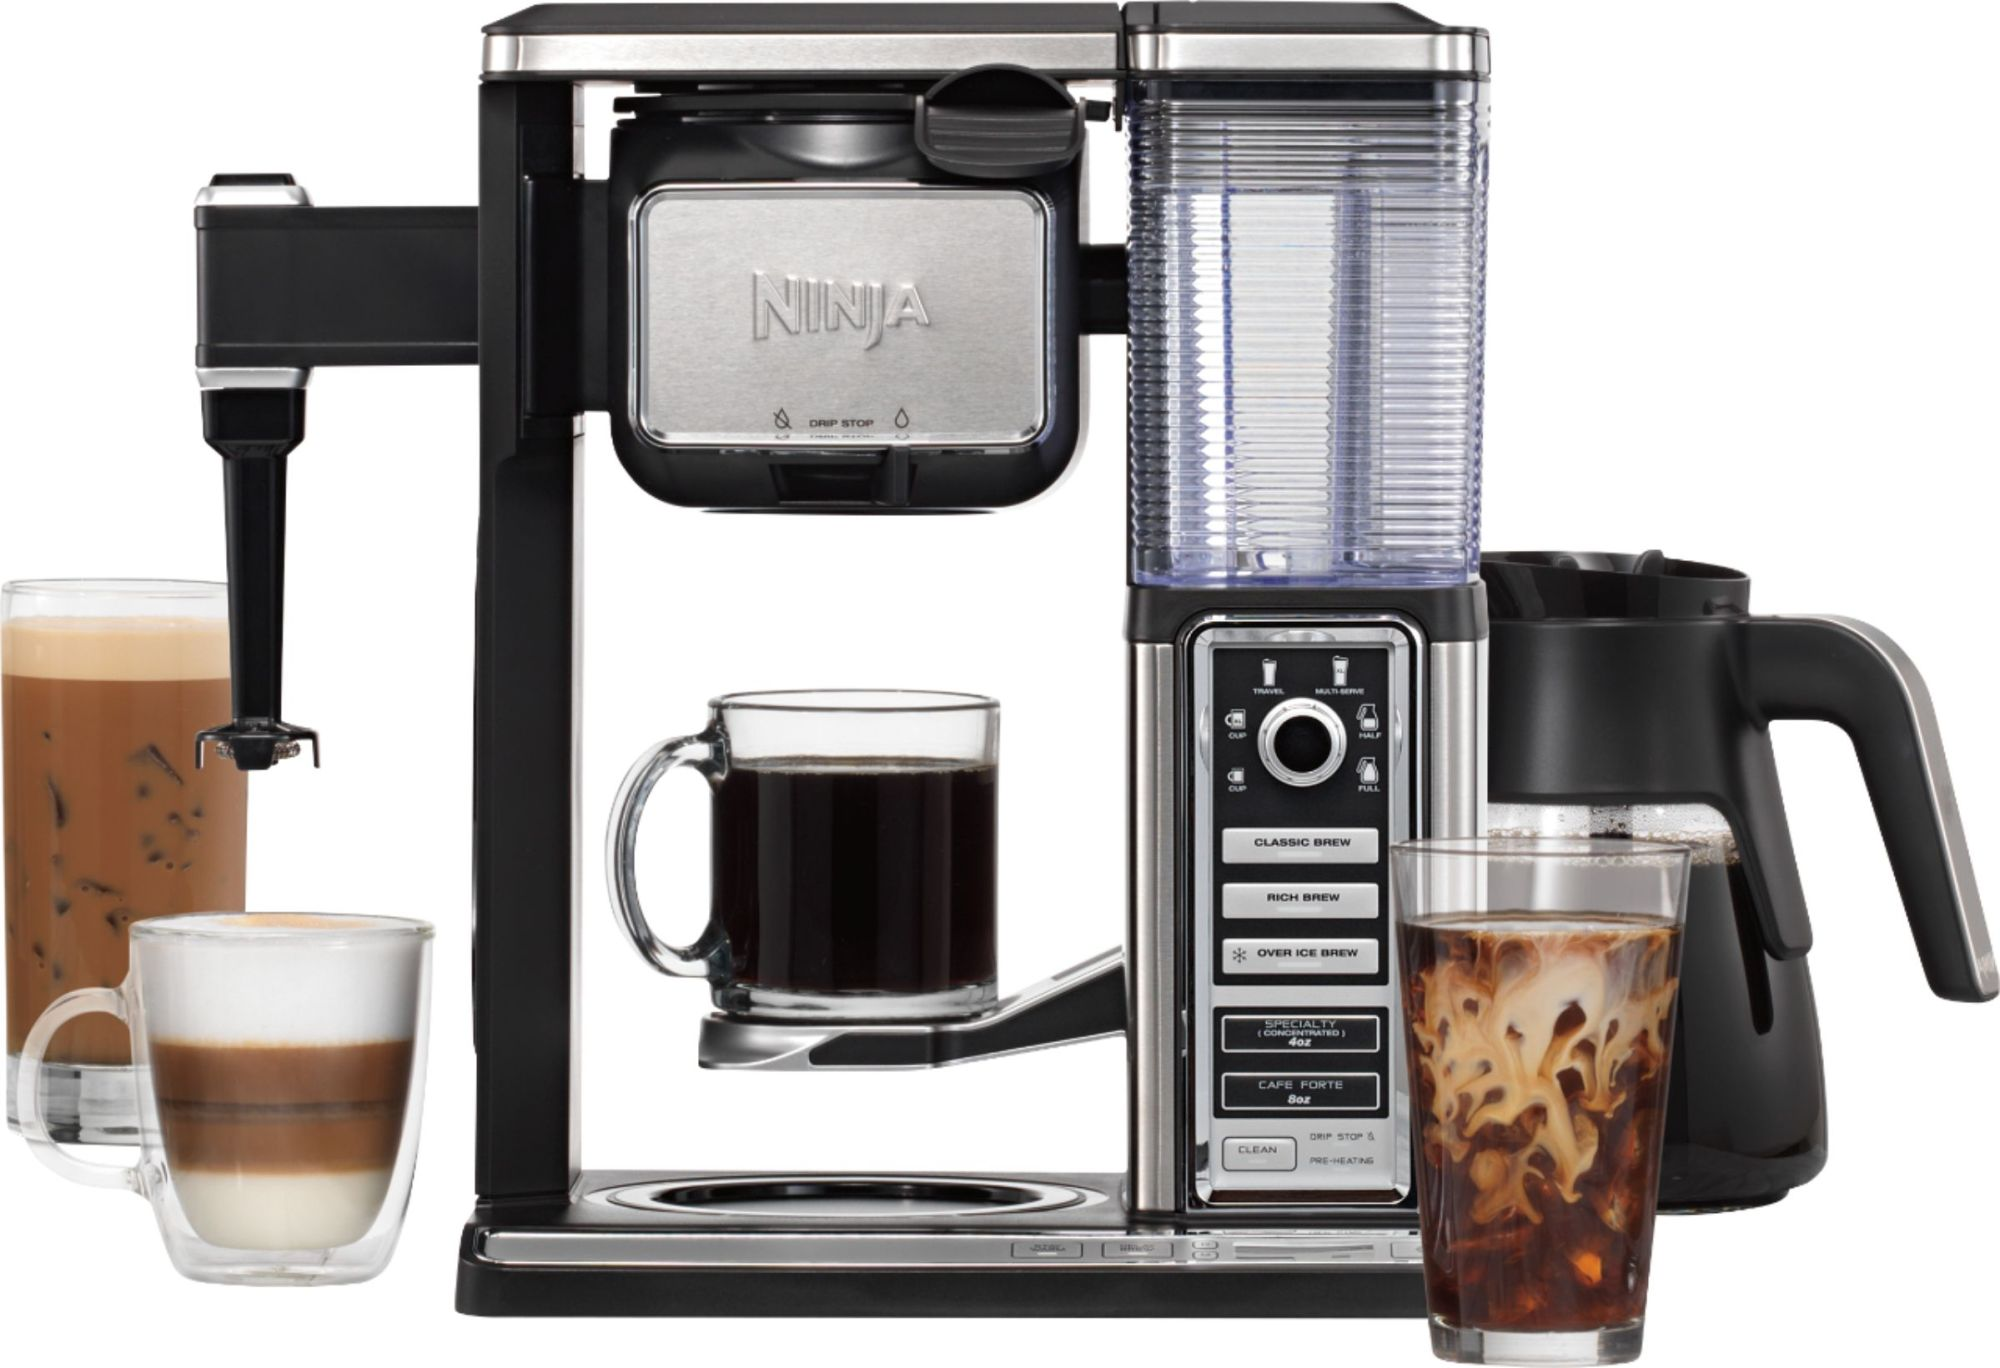 hight resolution of ninja coffee bar 10 cup coffee maker black stainless cf091 best buy with coffee maker schematic diagram on x ray machine parts diagram